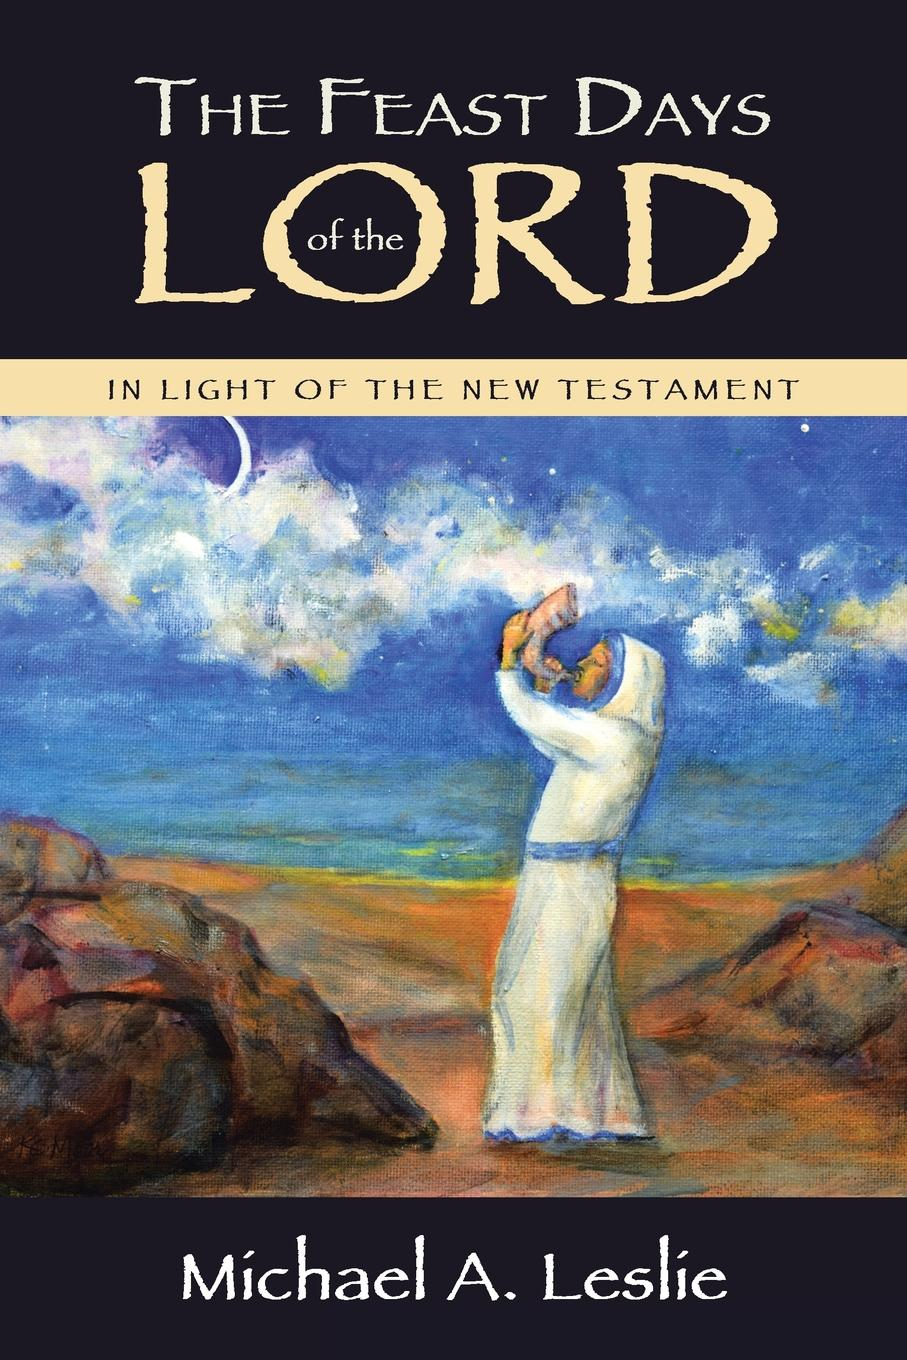 Michael A. Leslie The Feast Days of the Lord. In Light of the New Testament georg benedikt winer a treatise on the grammar of new testament greek regarded as a sure basis for new testament exegesis